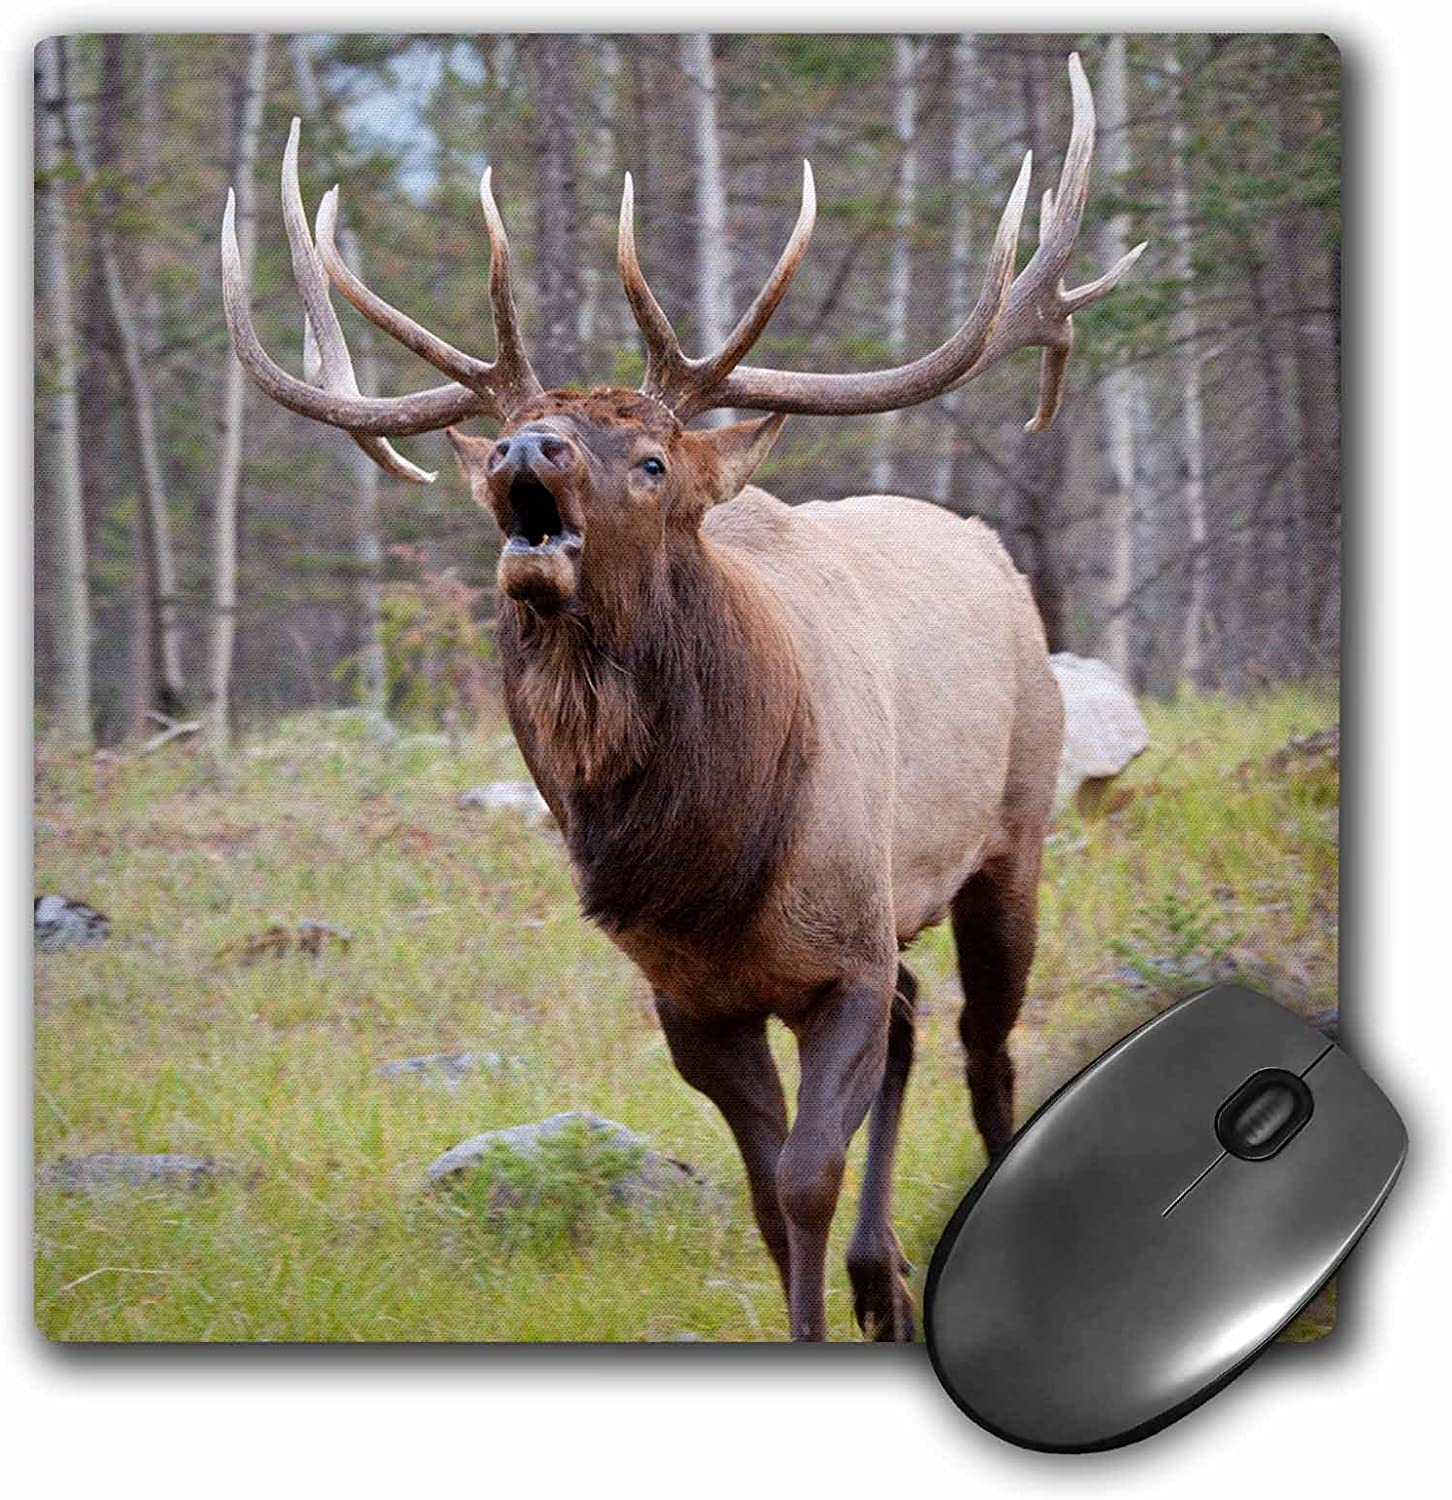 Bull elk bugling Canada Jasper NP 8 by 8 inches mp/_188400/_1 Alberta Mouse Pad